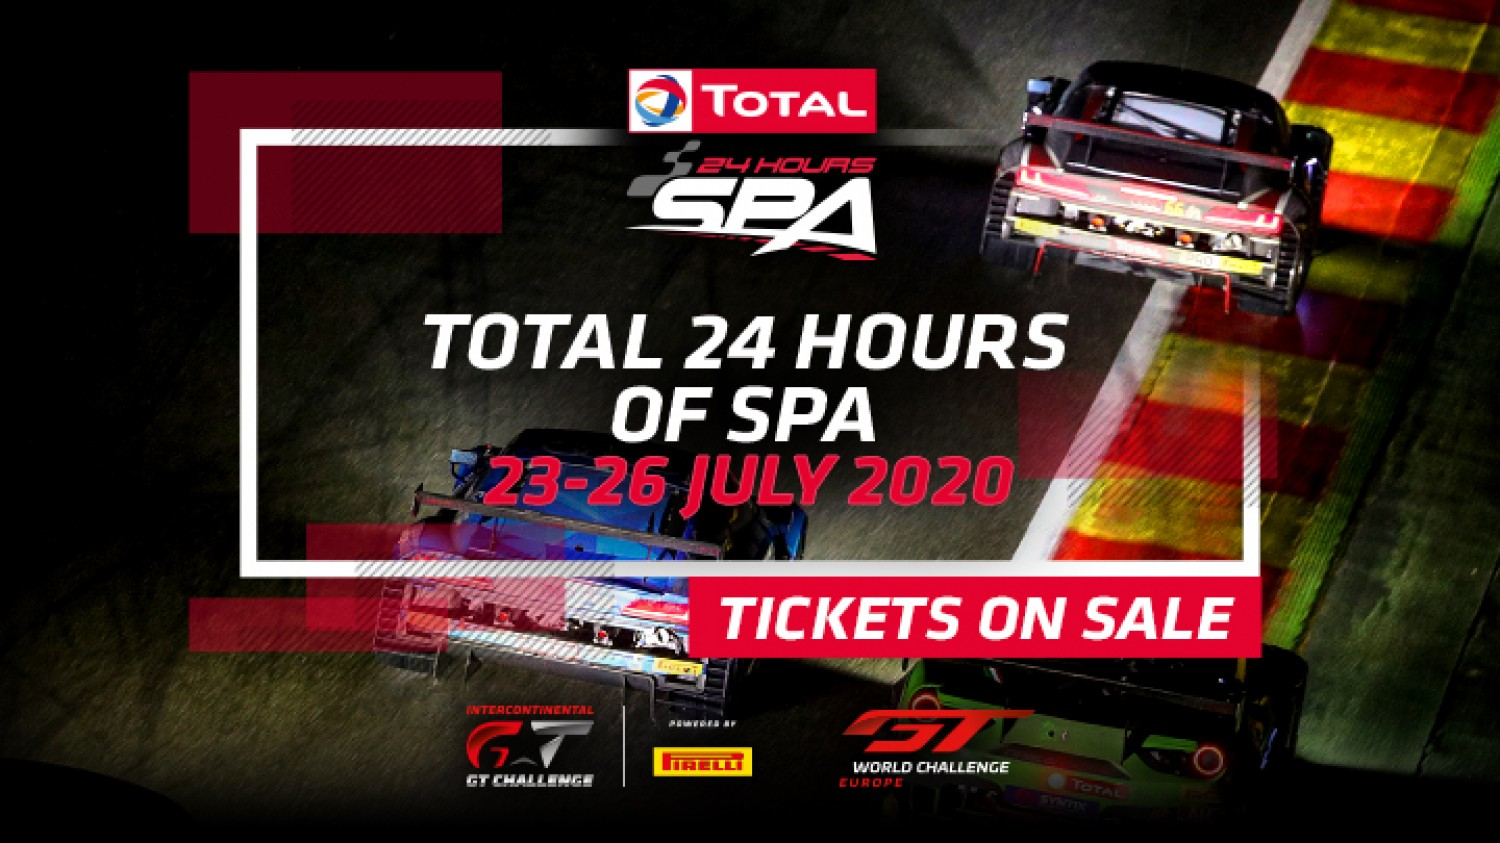 Tickets now on sale for 2020 Total 24 Hours of Spa